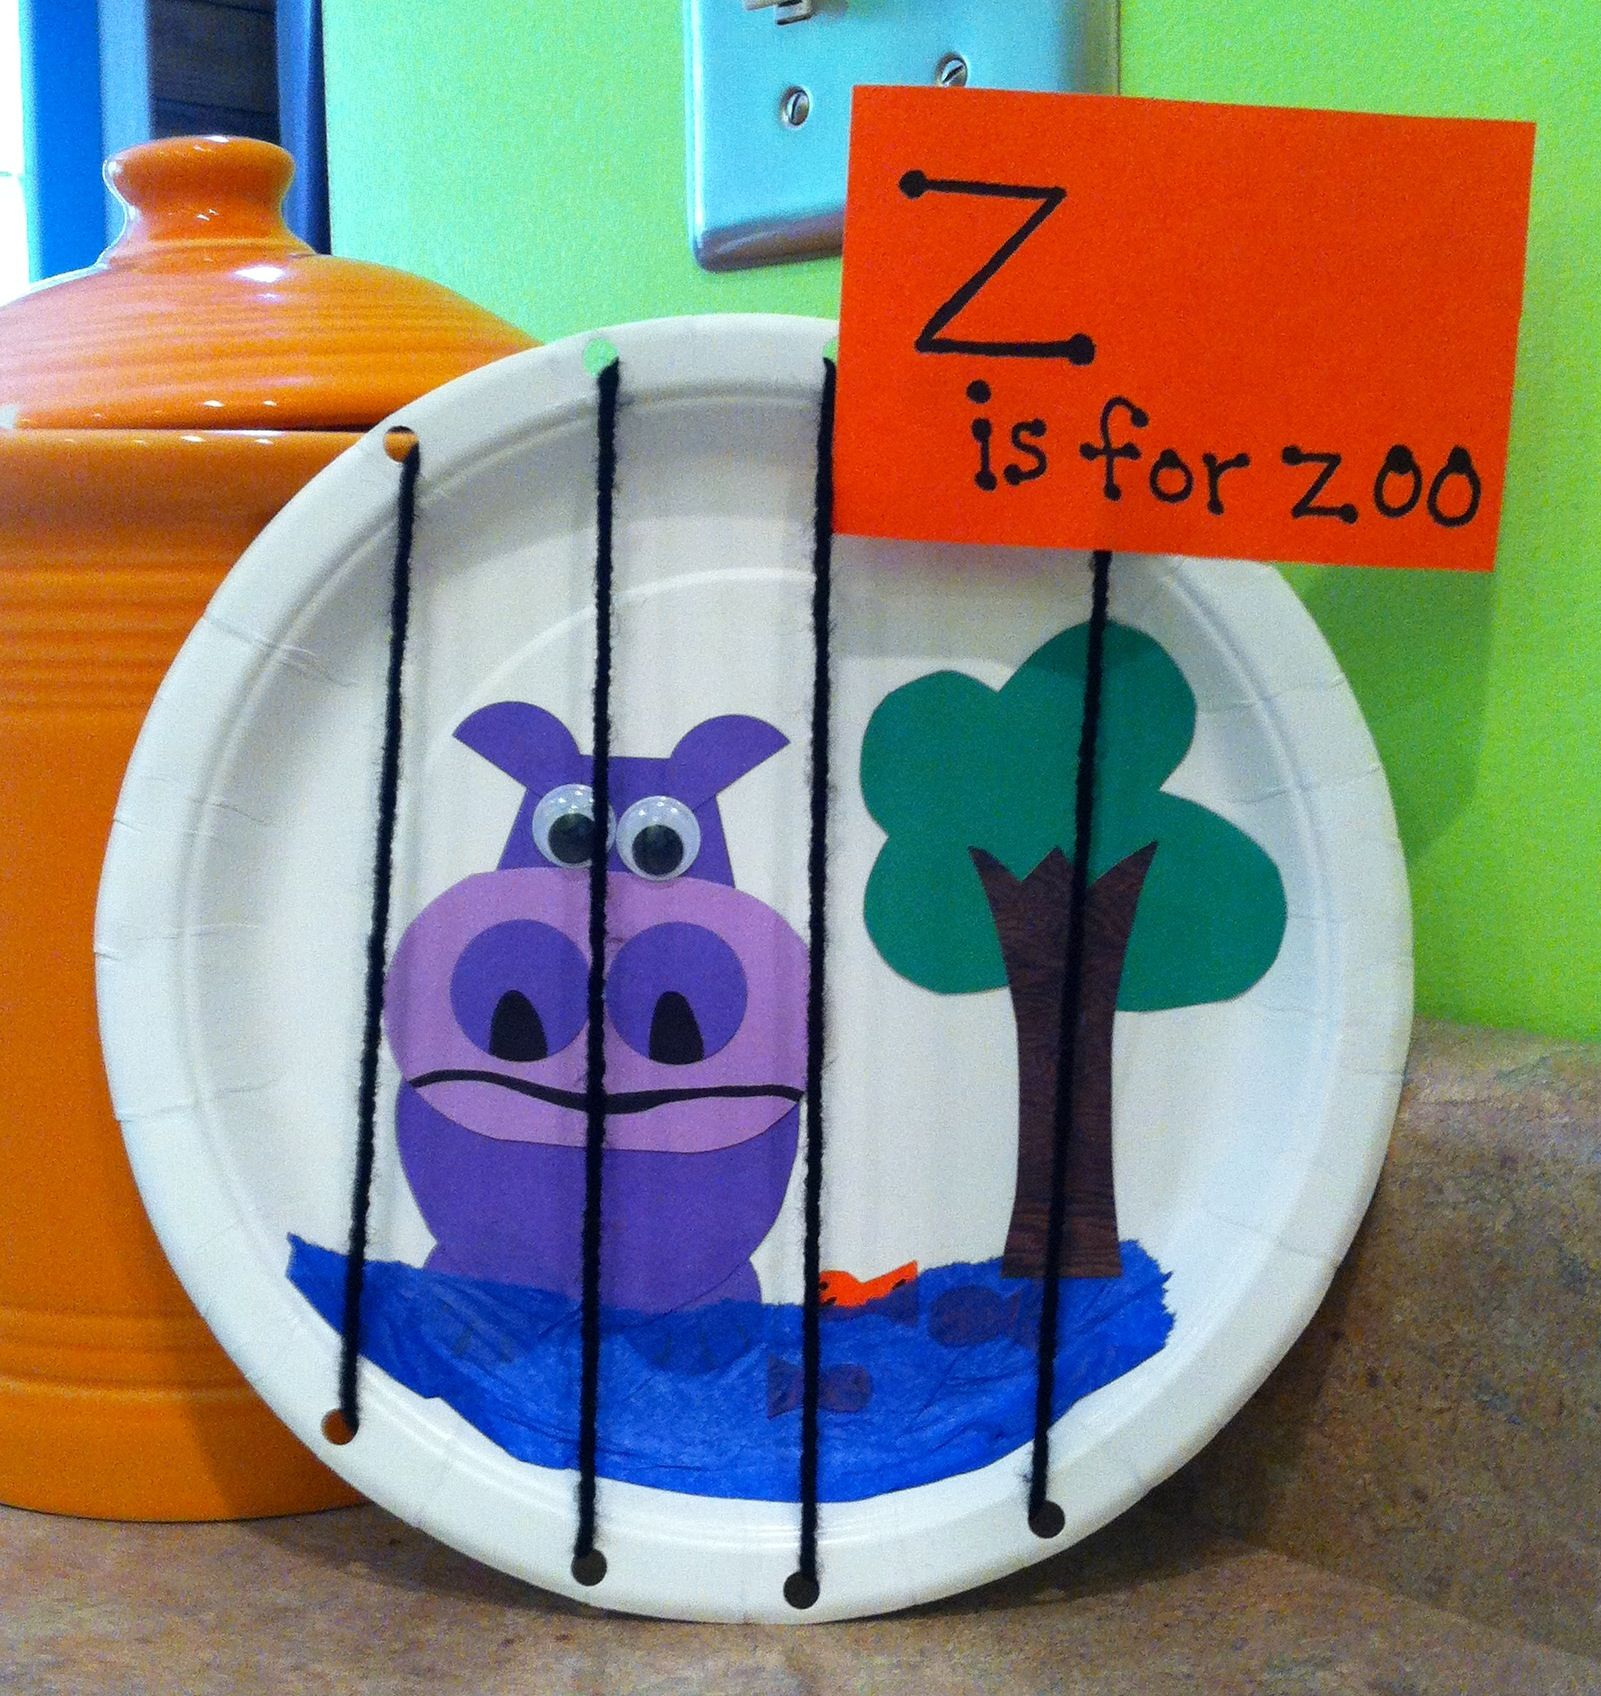 Letter s arts and crafts for preschoolers - Letter Z Craft Use A Small Box Instead